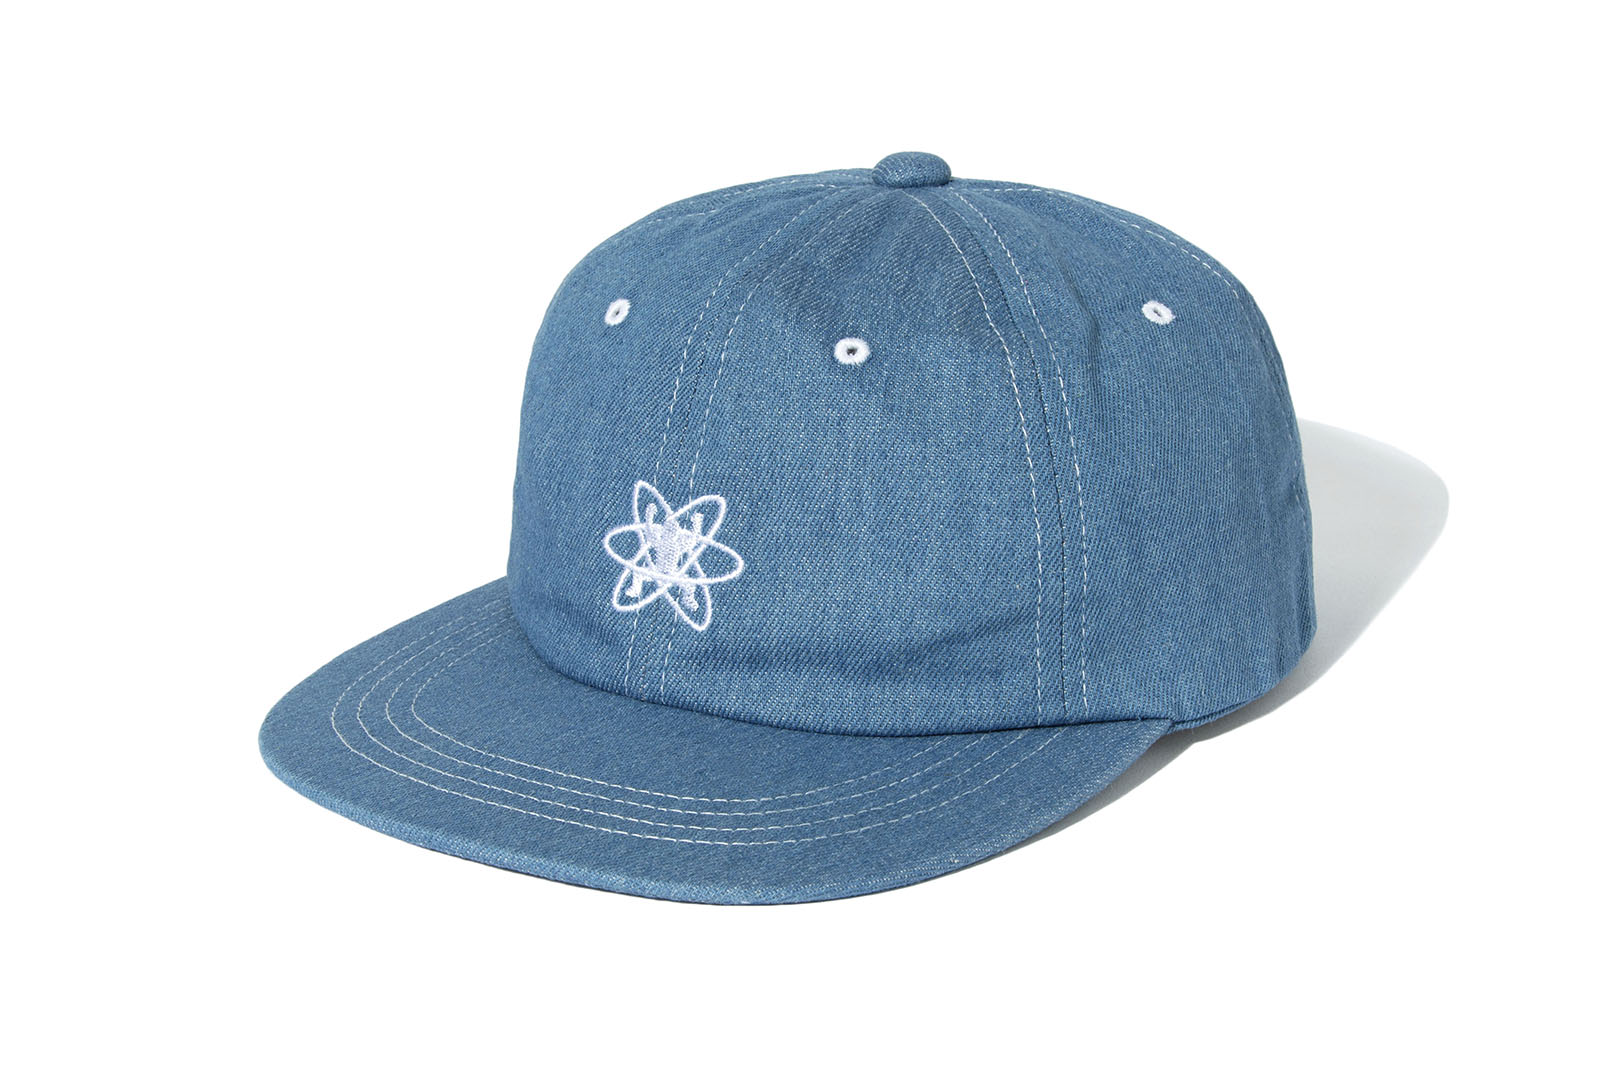 power-logo-cap-denim_p2